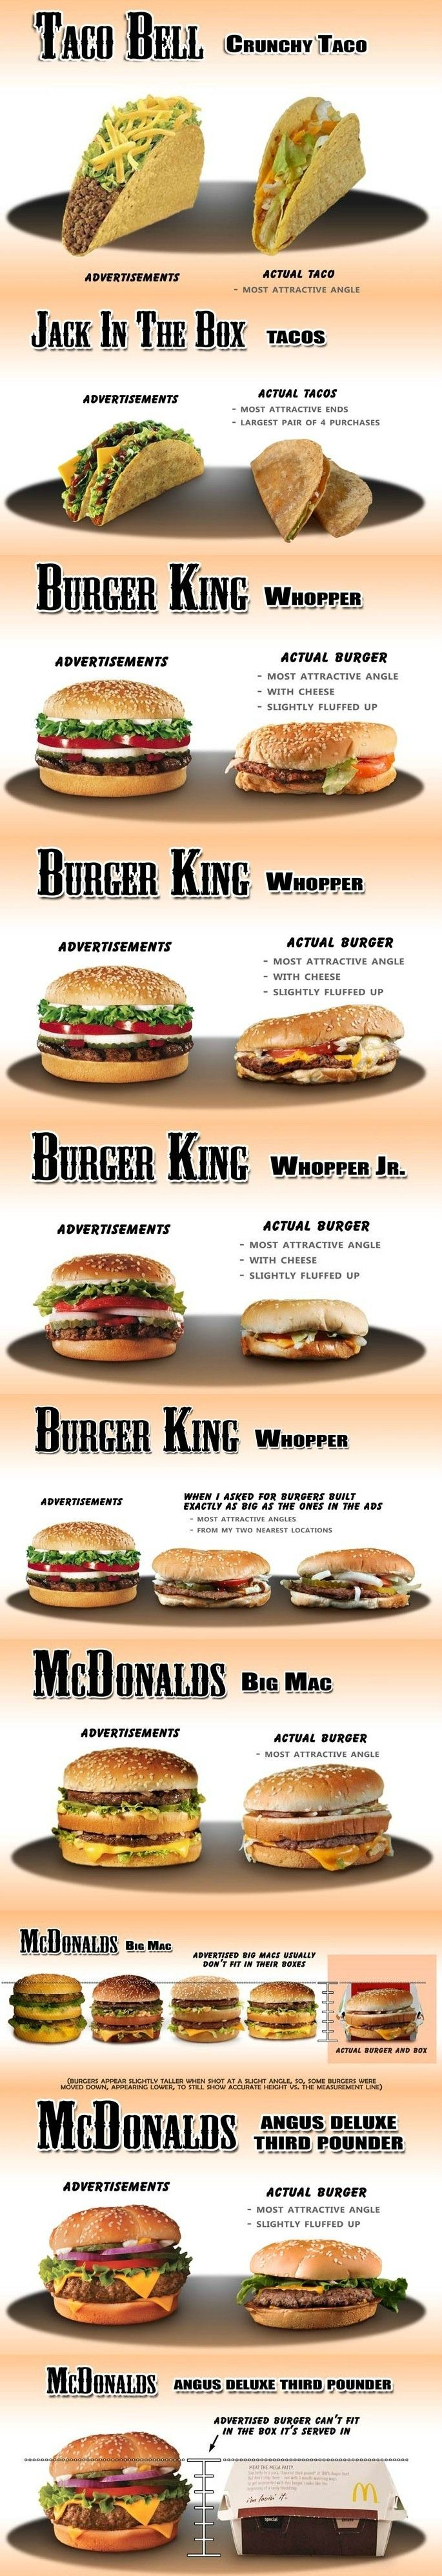 Fast Food Advertisements Vs. Reality Picture Comparison